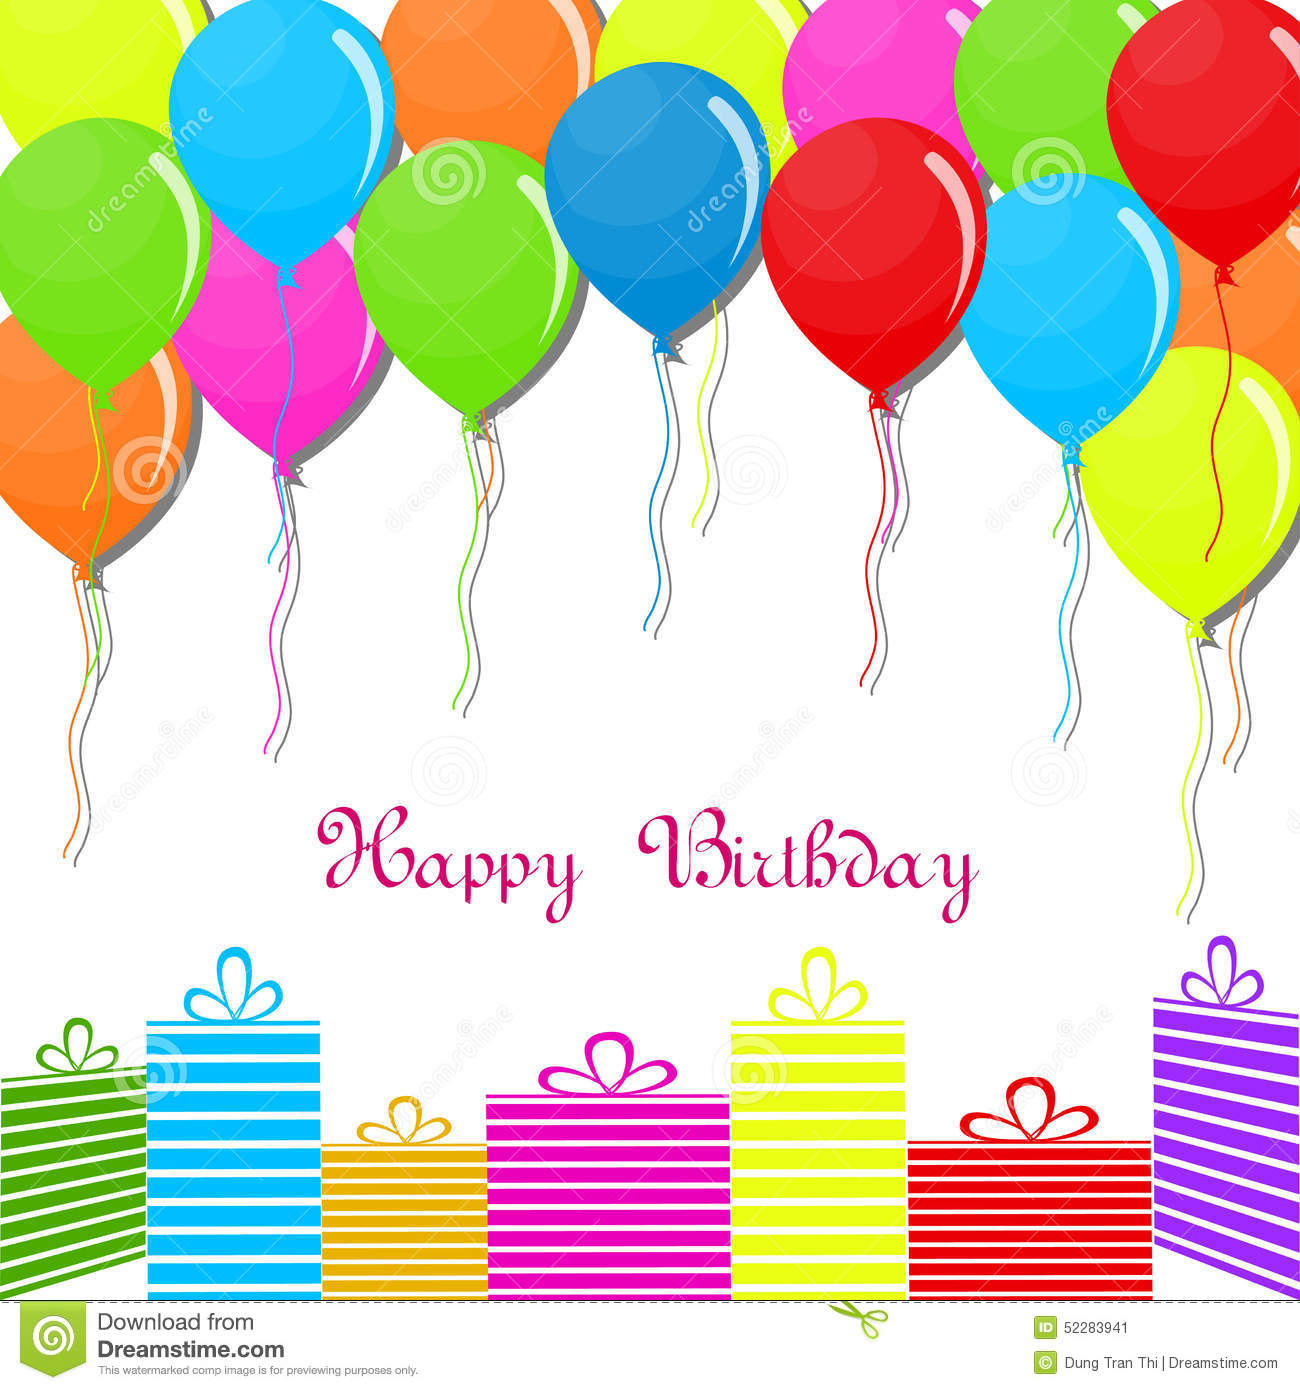 Happy Birthday Card On Background Stock Vector - Image: 52283941